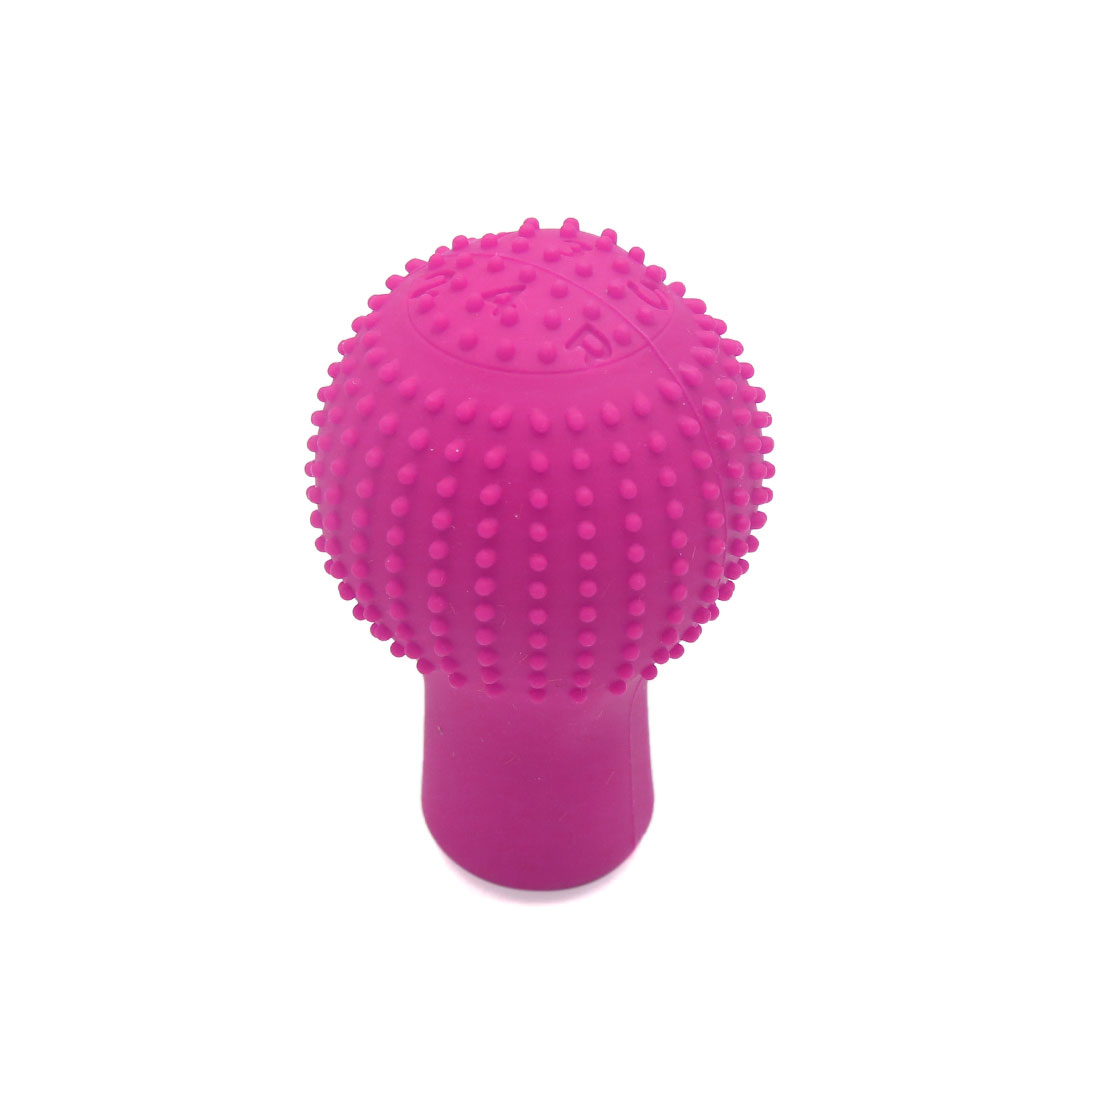 Pink Rubber Car Nonslip Round Hand Brake Head Cover Gear Shift Knob Protector